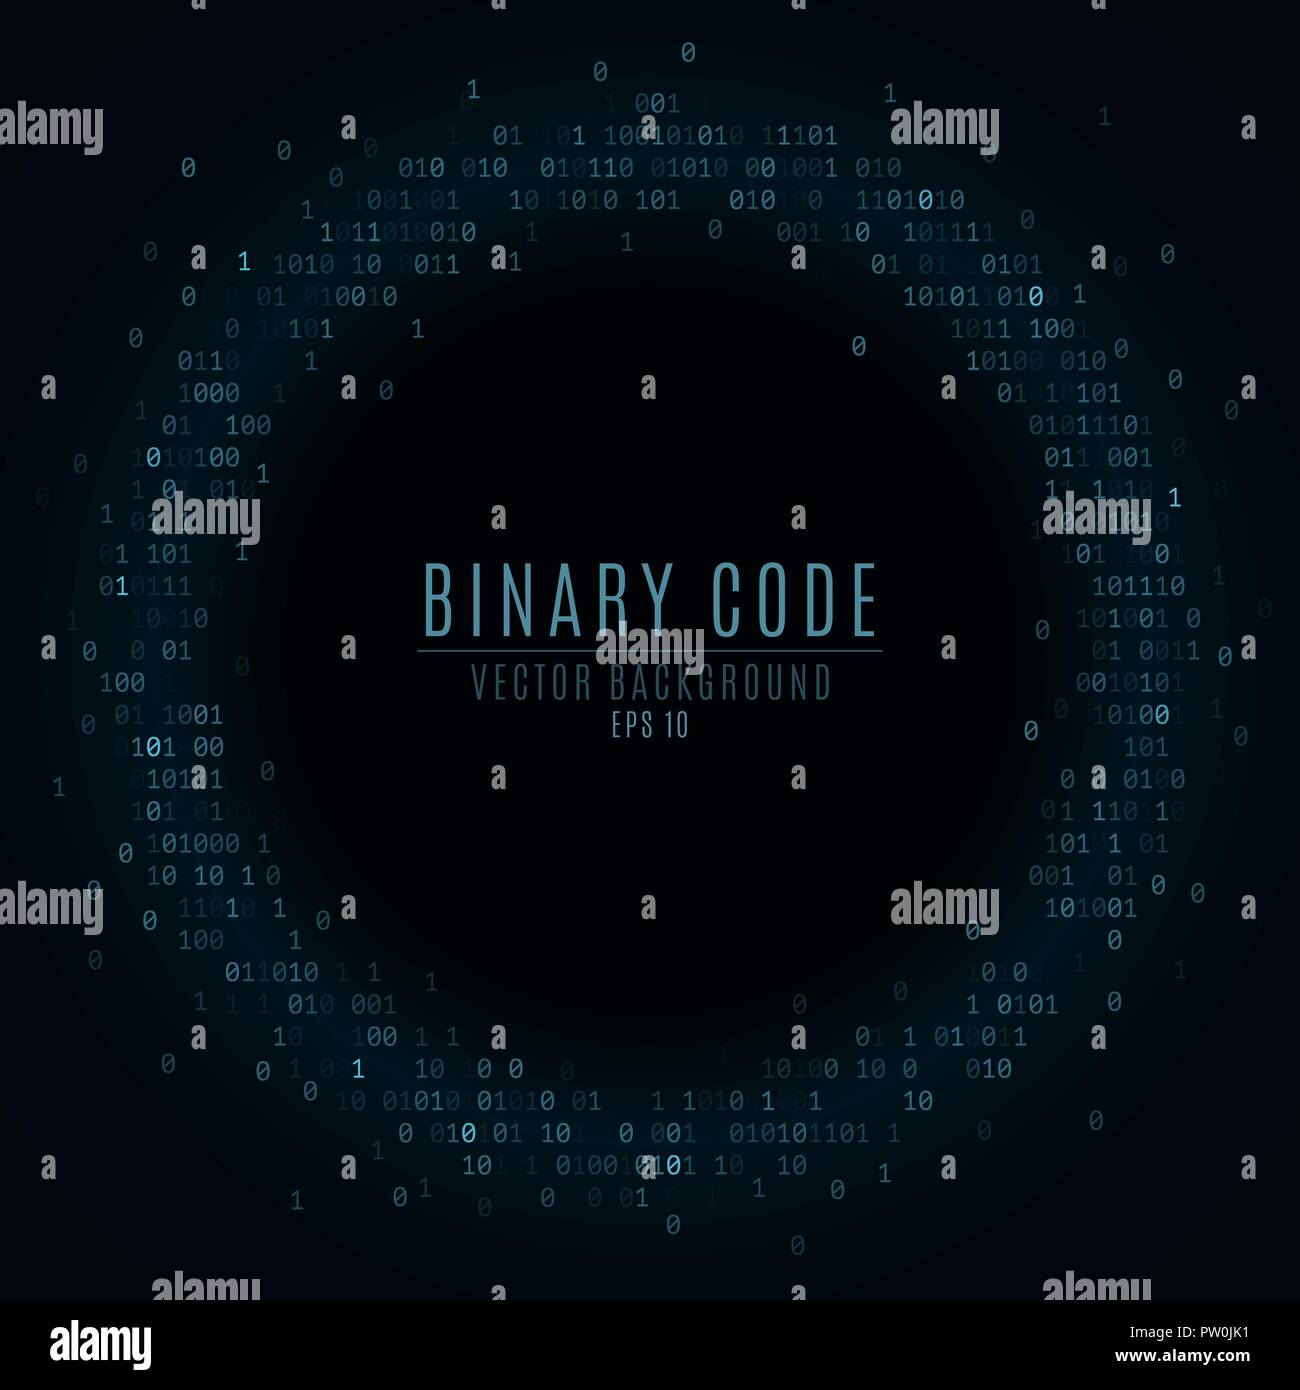 Binary code. Abstract banner. Falling blue glowing numbers. Global network. High technologies, programming, sci-fi. Hacking system. Vector illustratio - Stock Image